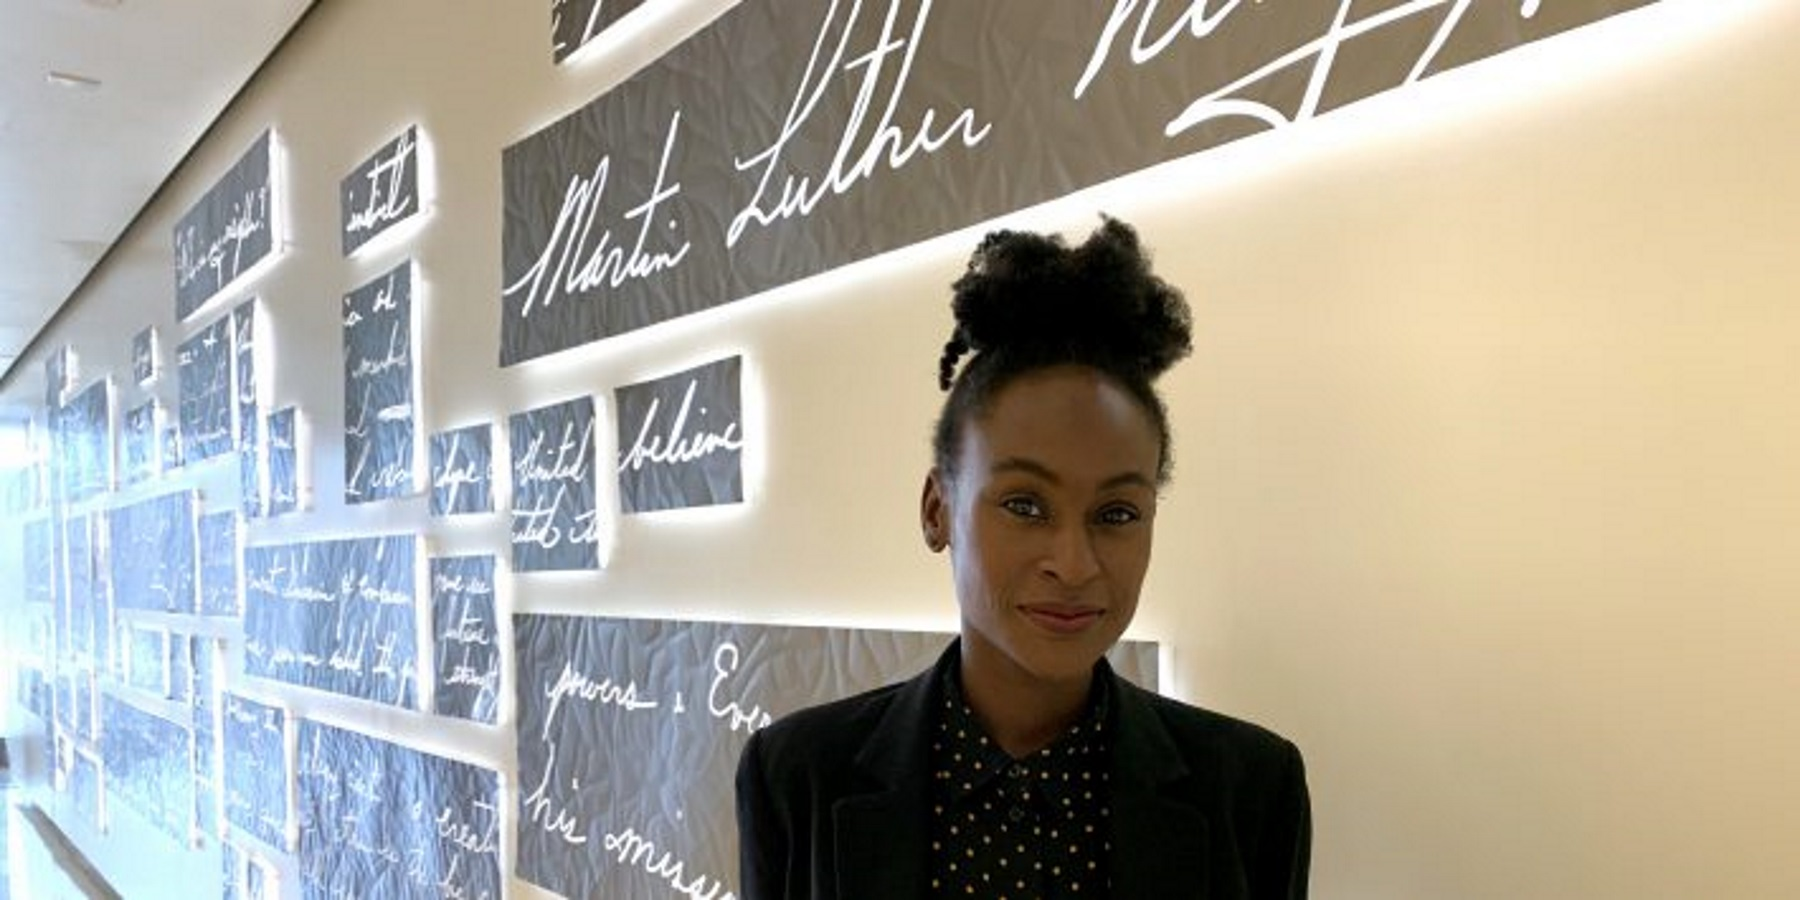 """Lauren Baeza, director of exhibitions at Atlanta's National Center for Civil and Human Rights, stands near the new exhibit """"We Share the Dream"""" in January."""